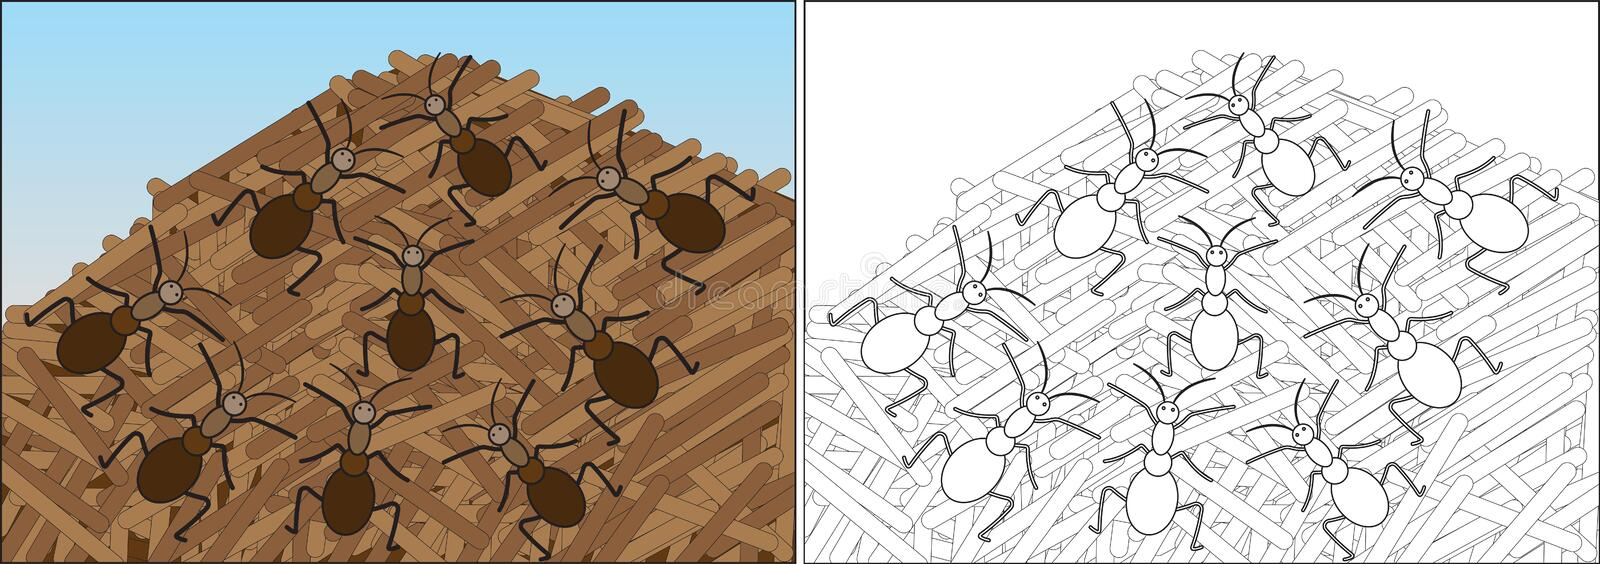 Ants Anthill Stock Illustrations – 133 Ants Anthill Stock